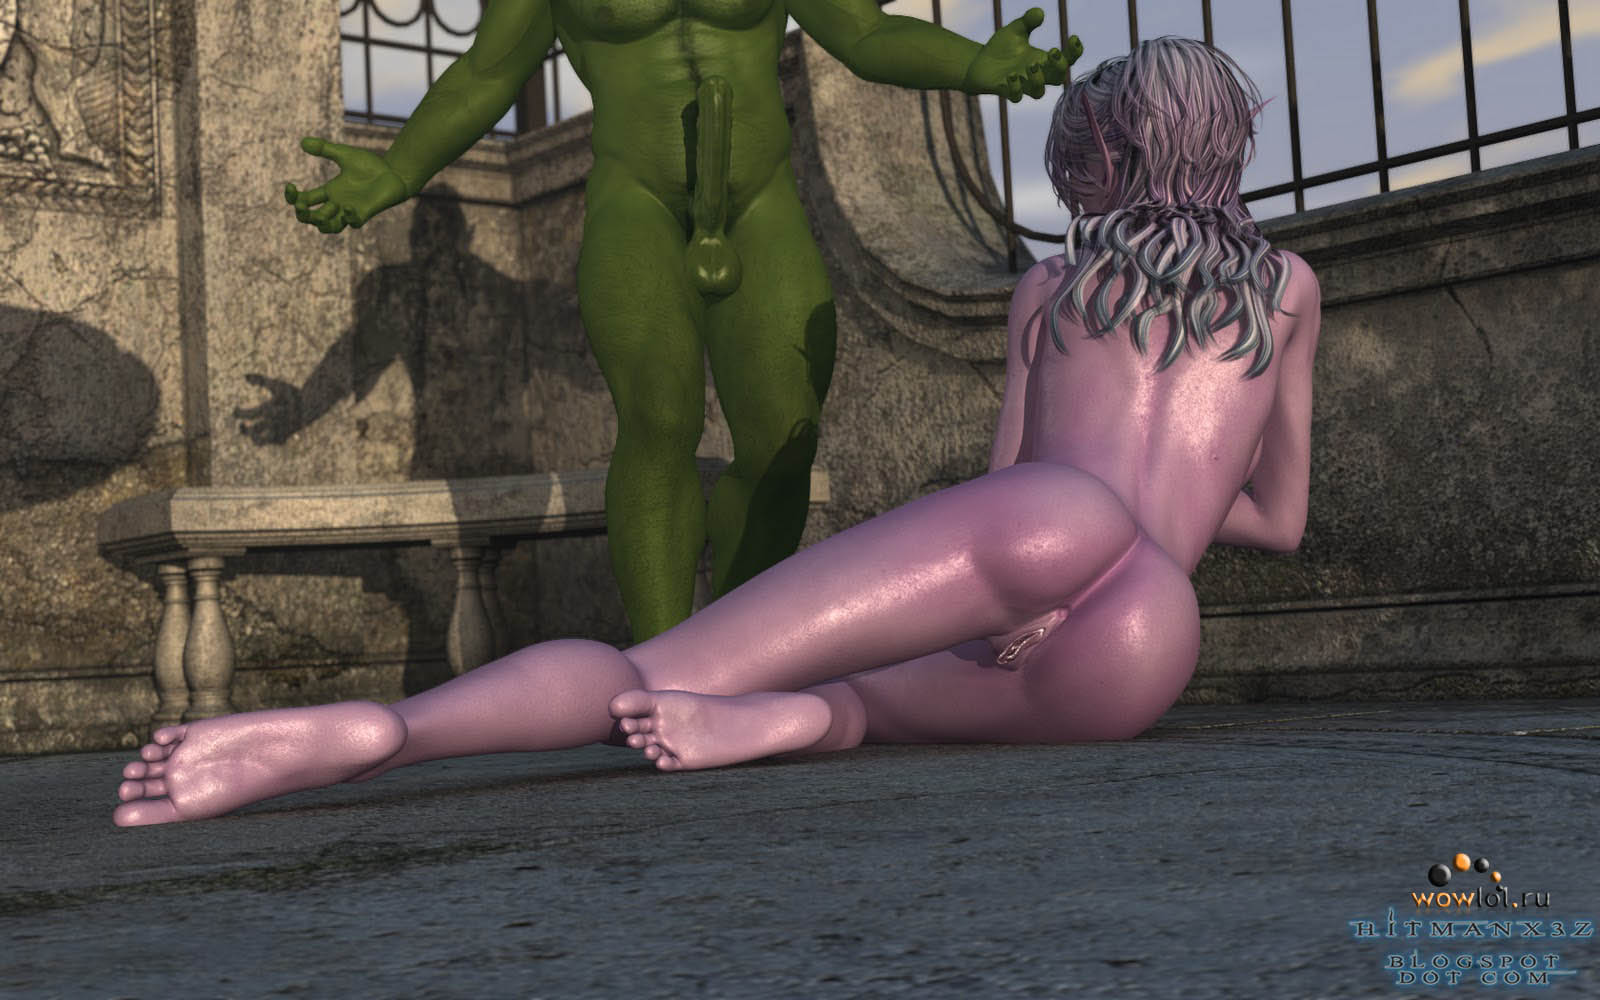 3d World of Warcraft porn v34 porn scene